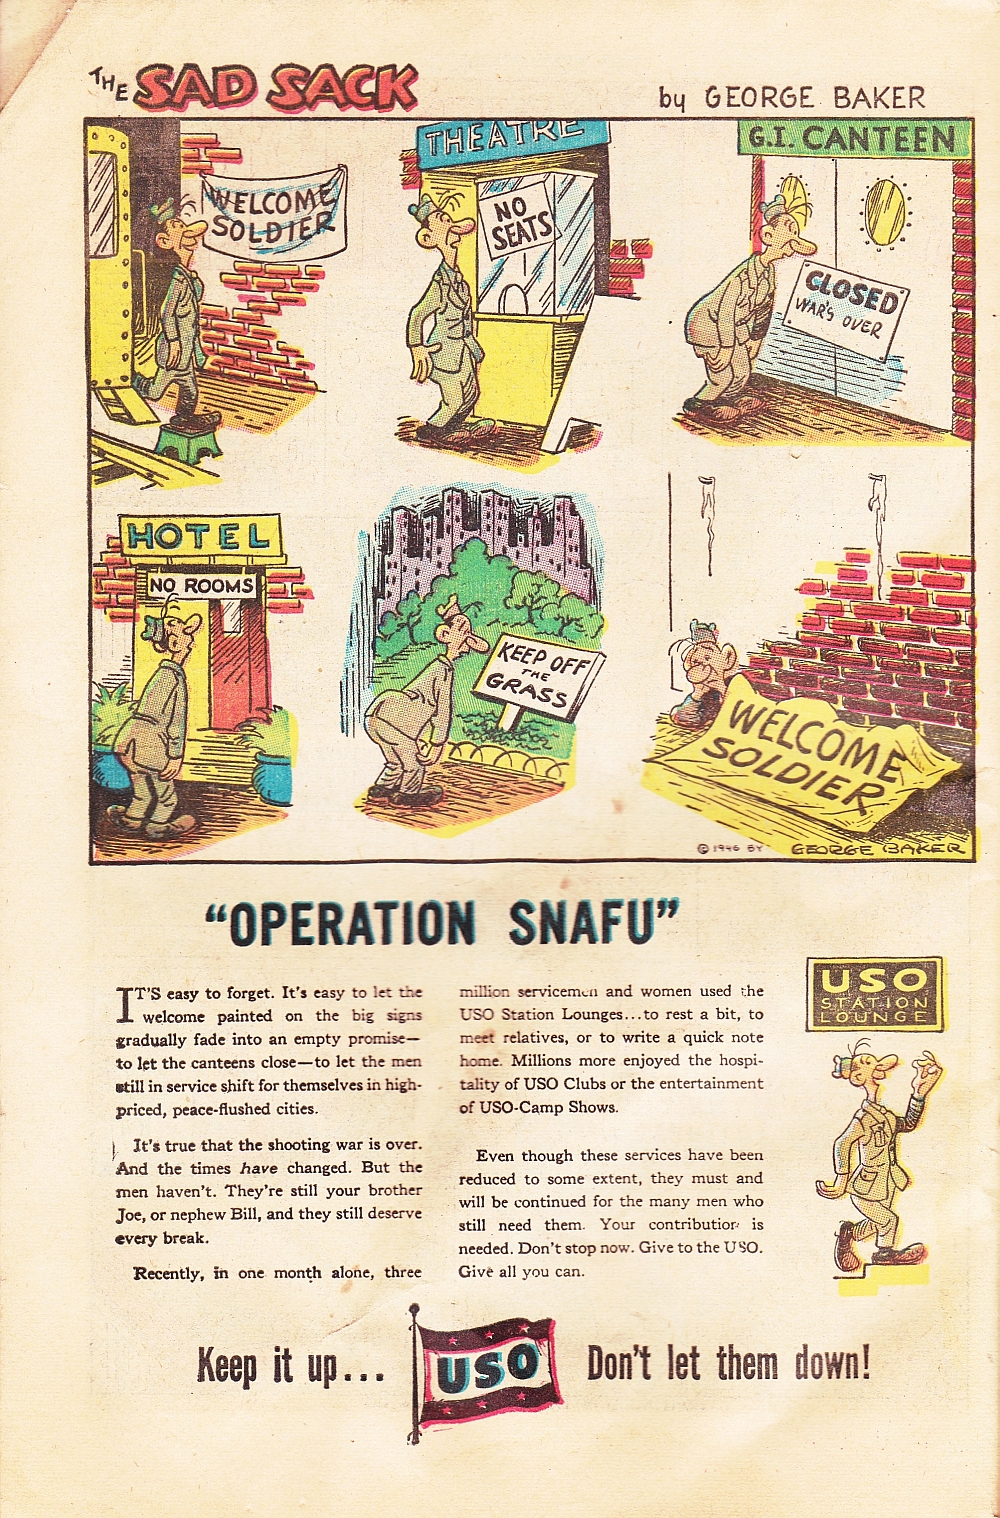 Sad Sack USO ad